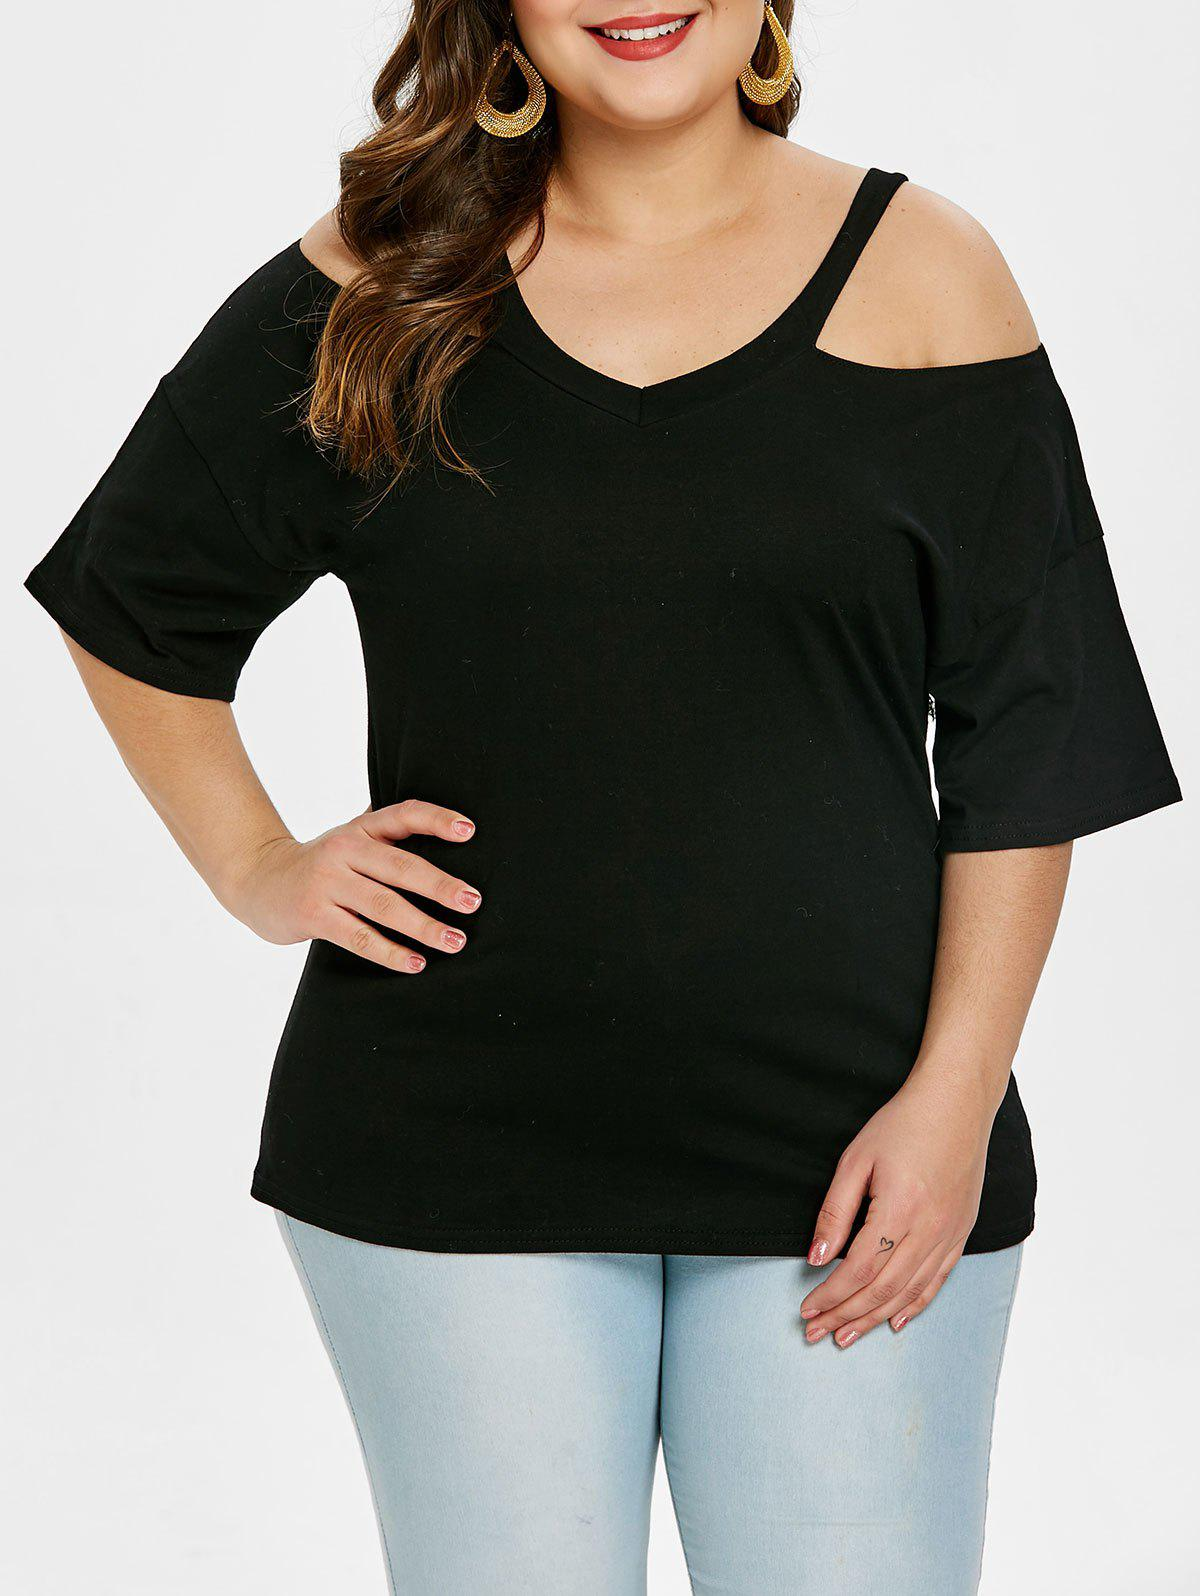 d14d6f9b246 Fashion Half Sleeve Plus Size V Neck Tee